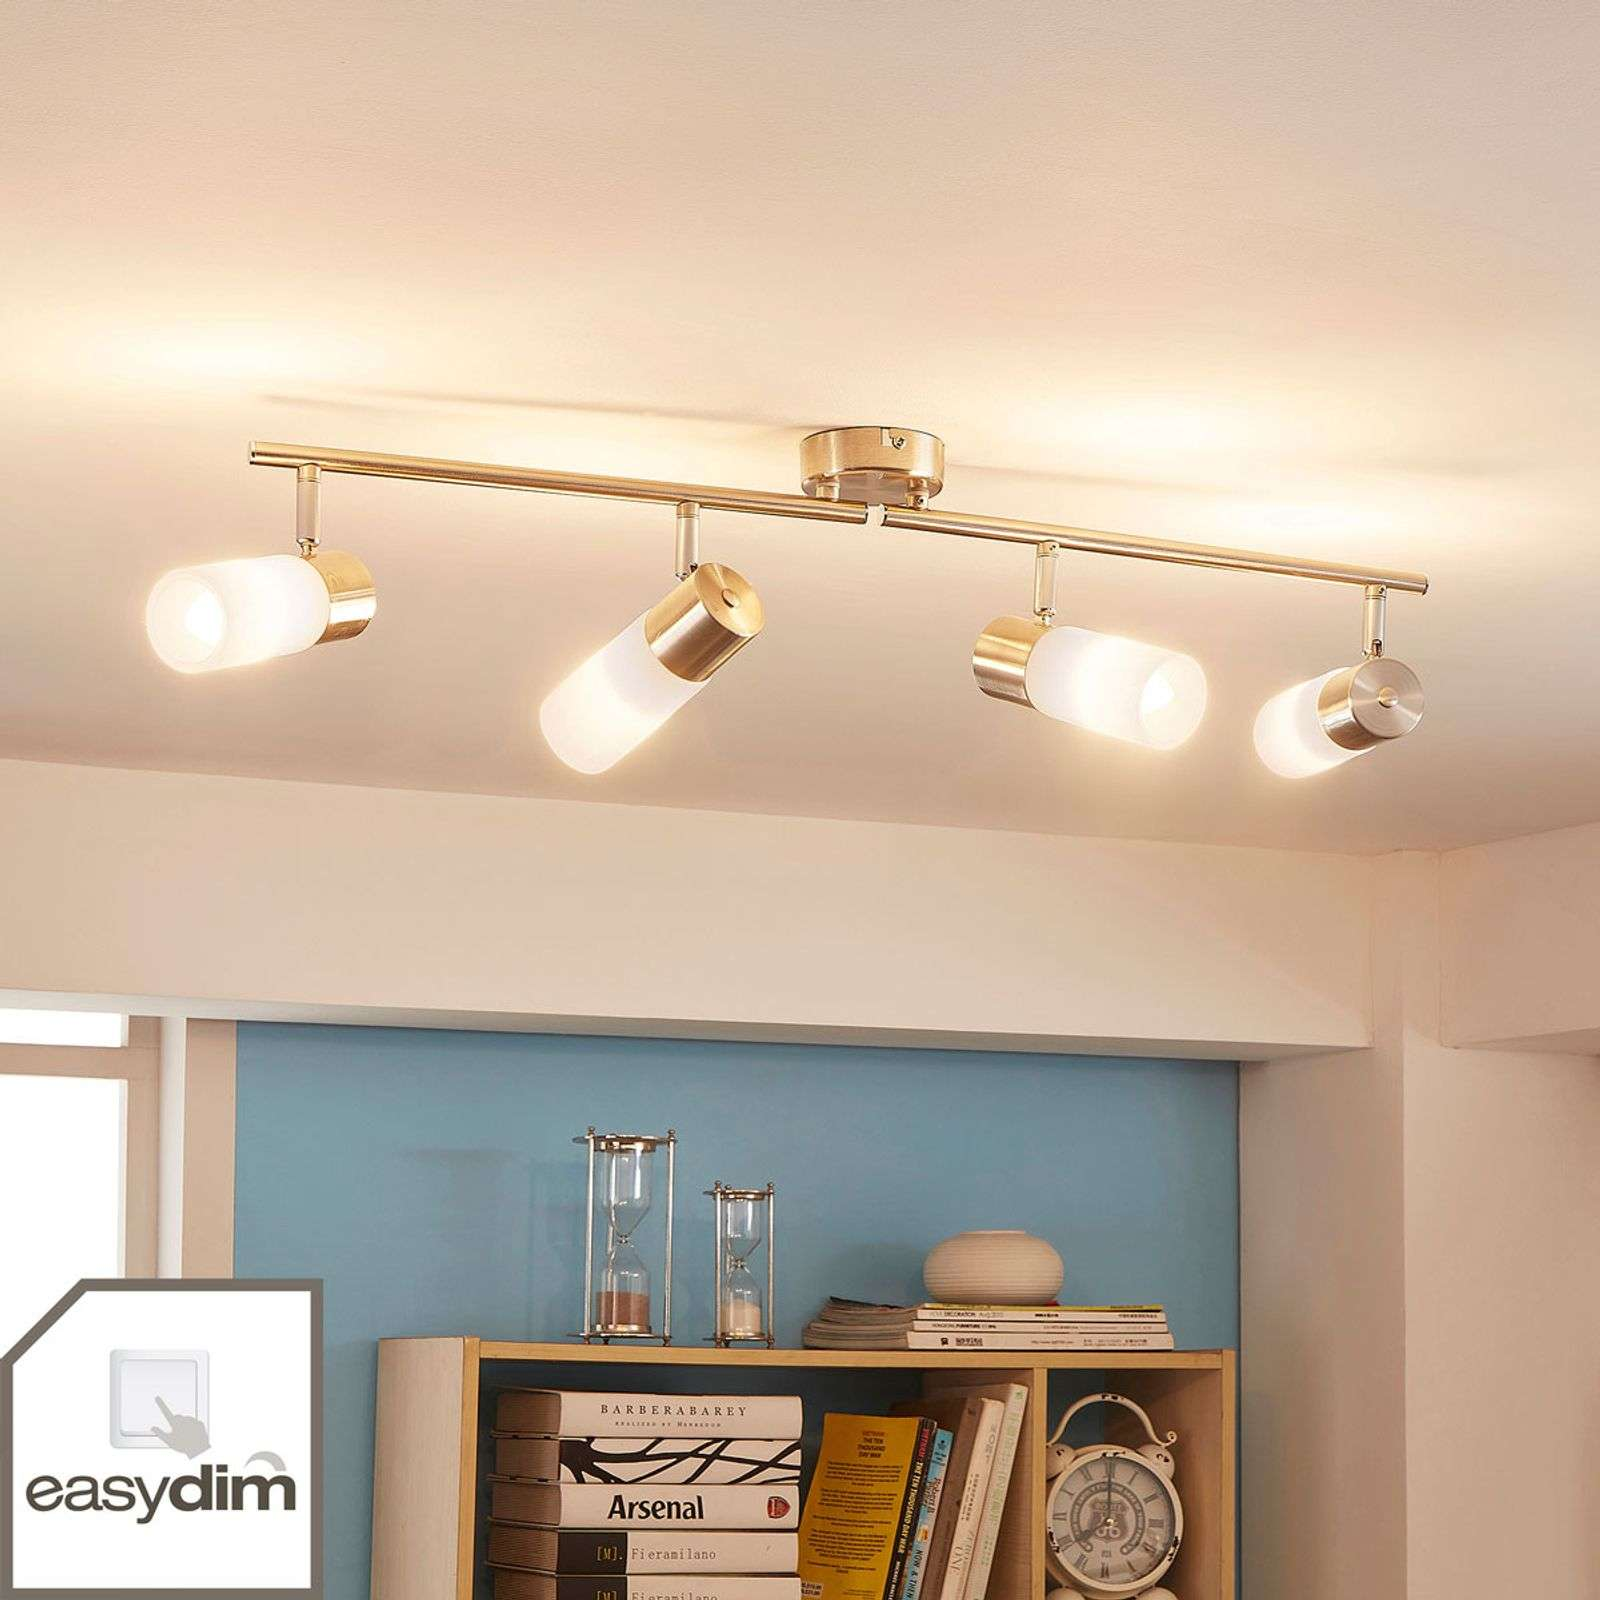 Plafonnier LED Easydim Erva, nickel satiné